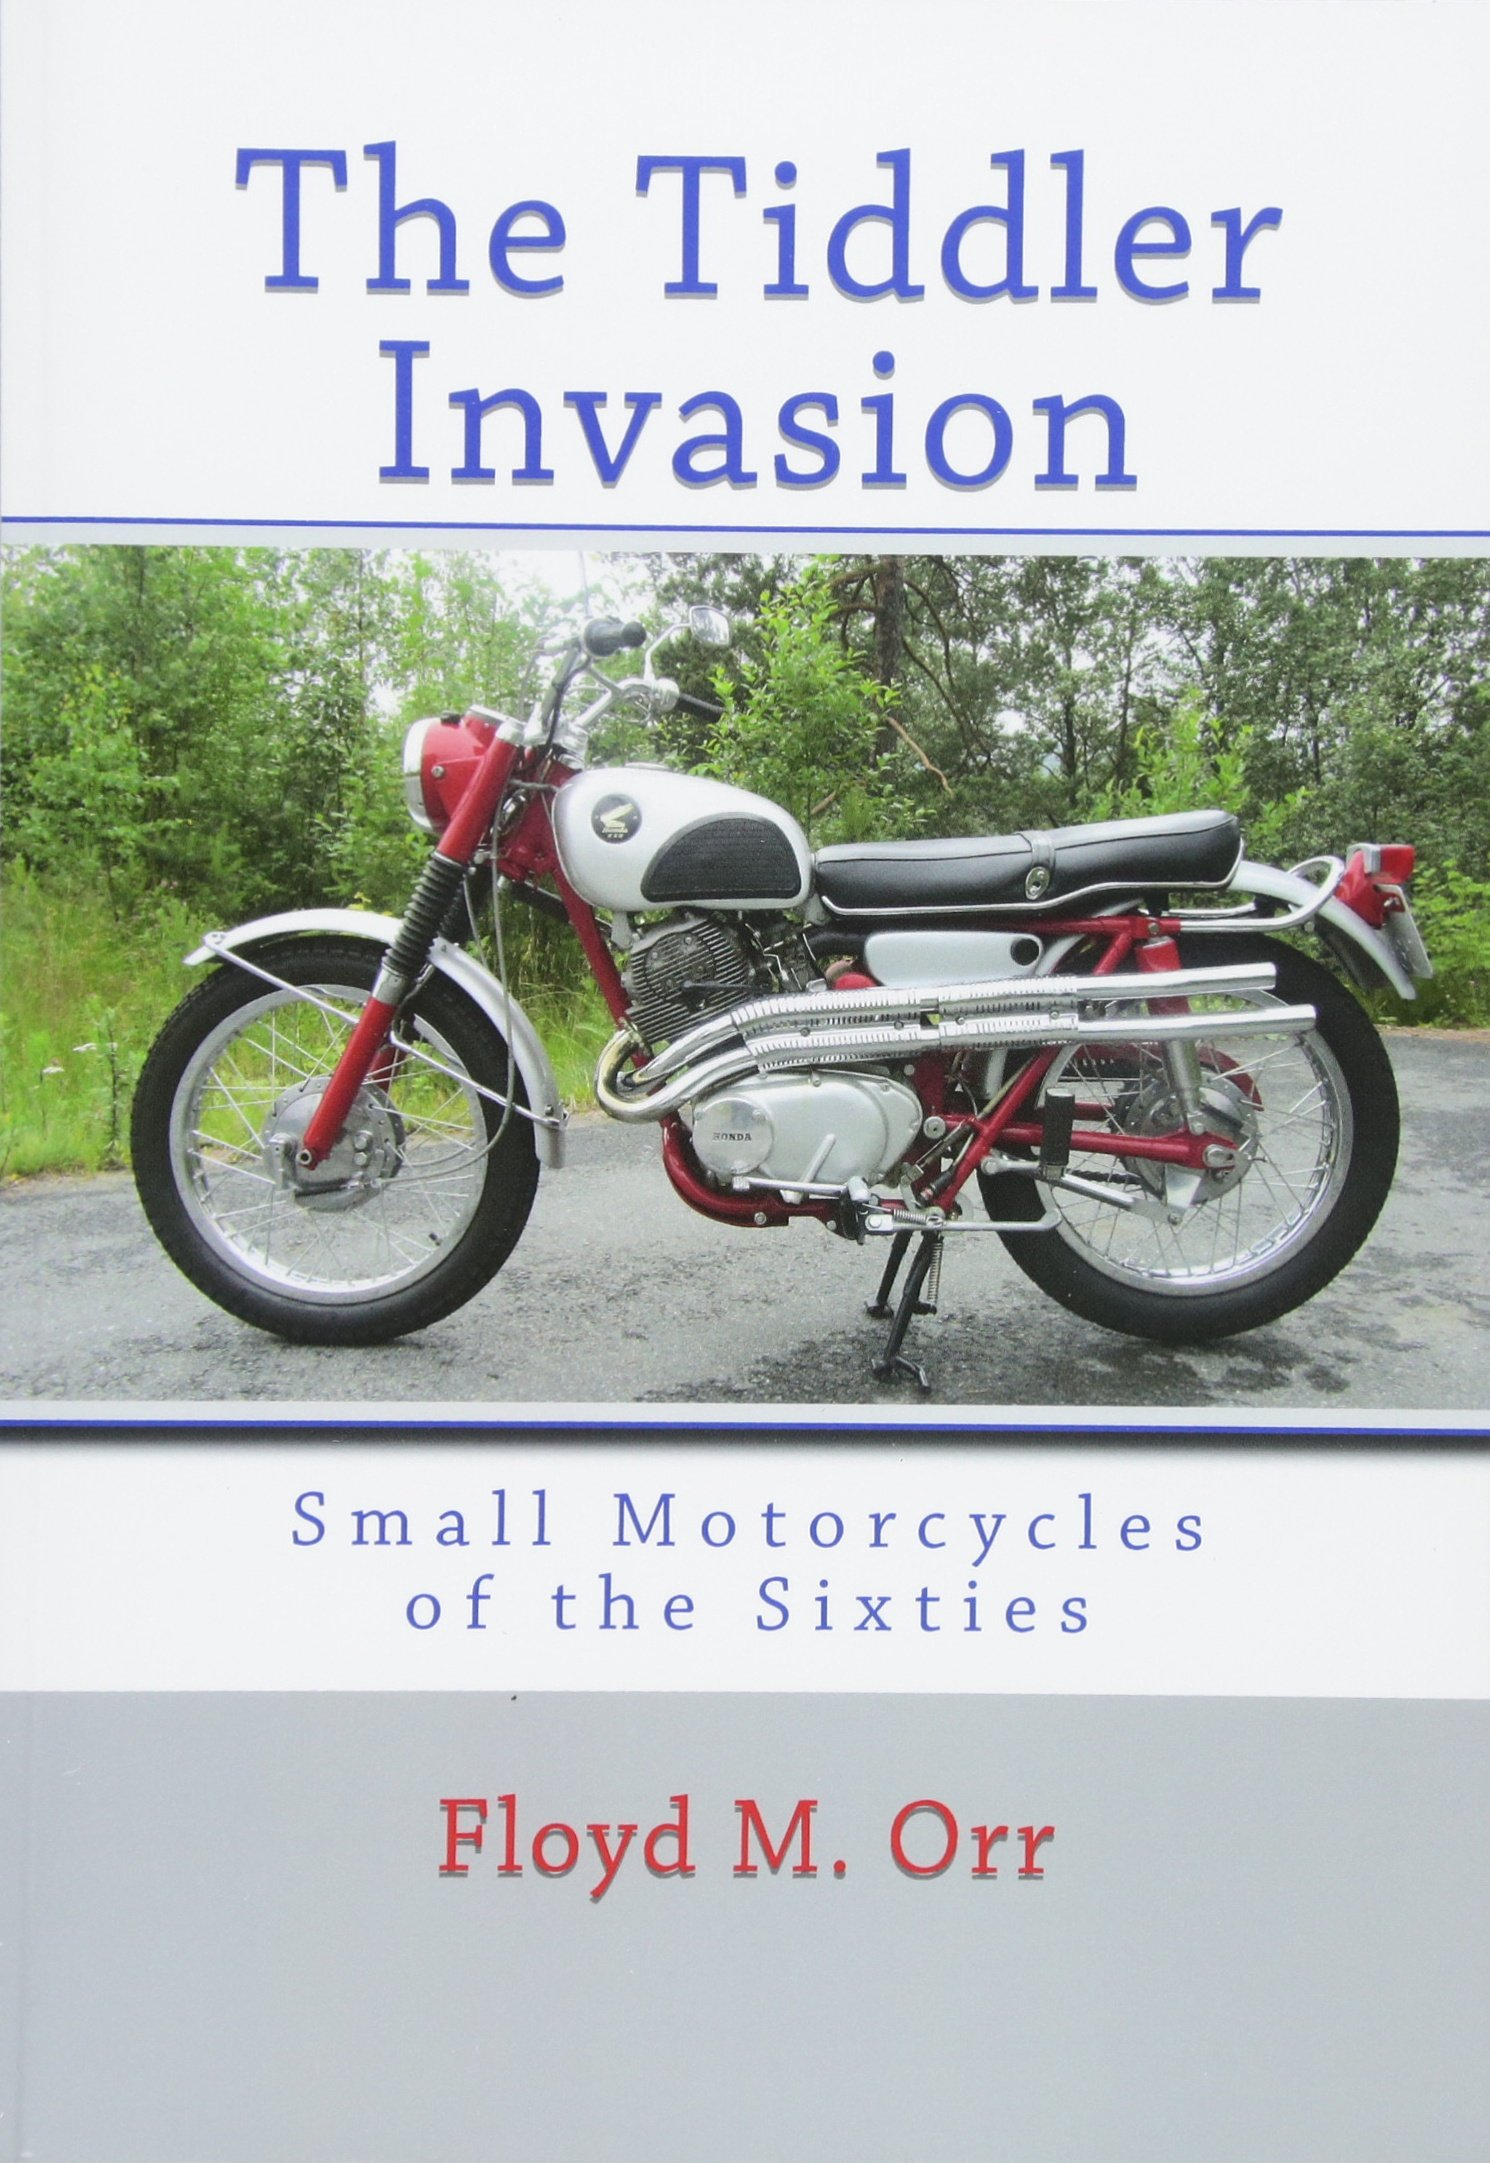 The Tiddler Invasion: Small Motorcycles of the Sixties: Floyd M. Orr:  9780615841670: Amazon.com: Books